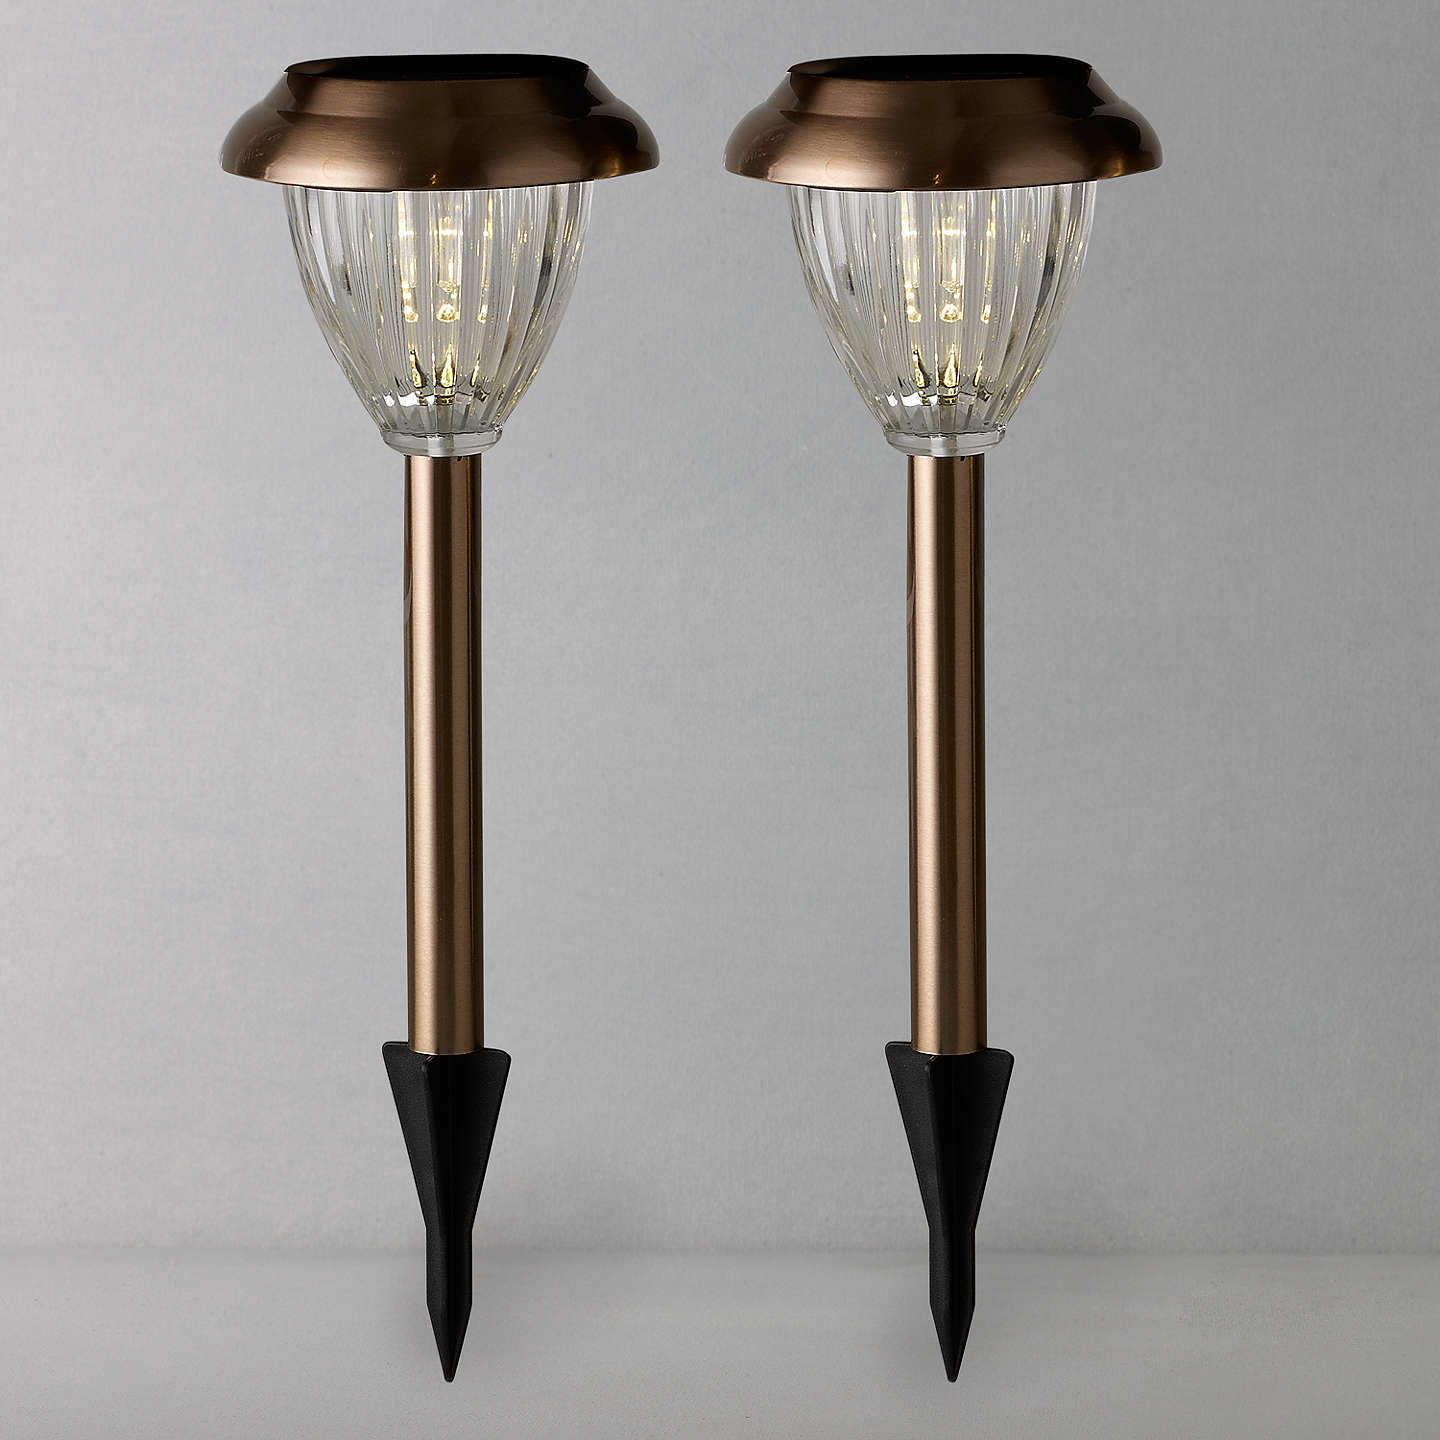 Porch Light John Lewis: John Lewis Bahia Solar Outdoor LED Stake Lights, Copper